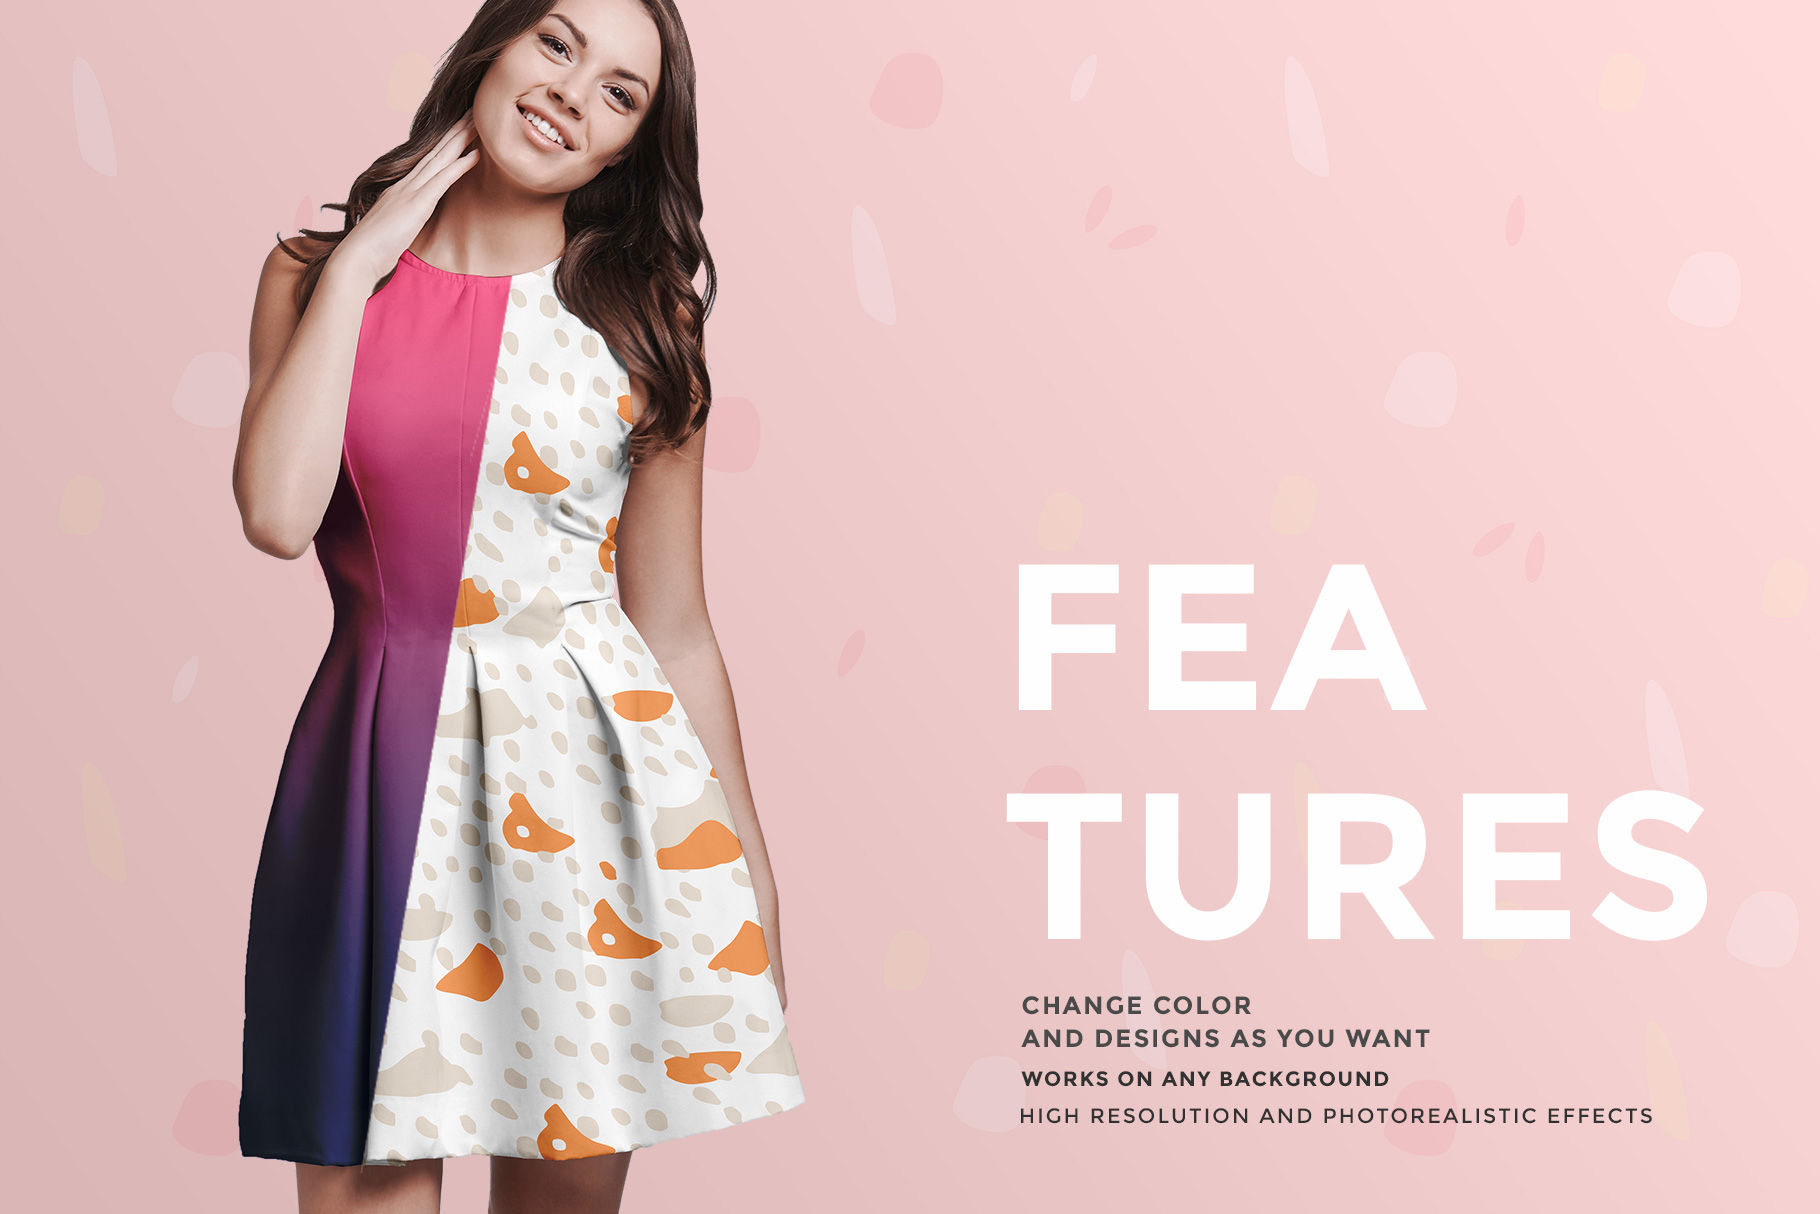 features of the female short party dress mockup